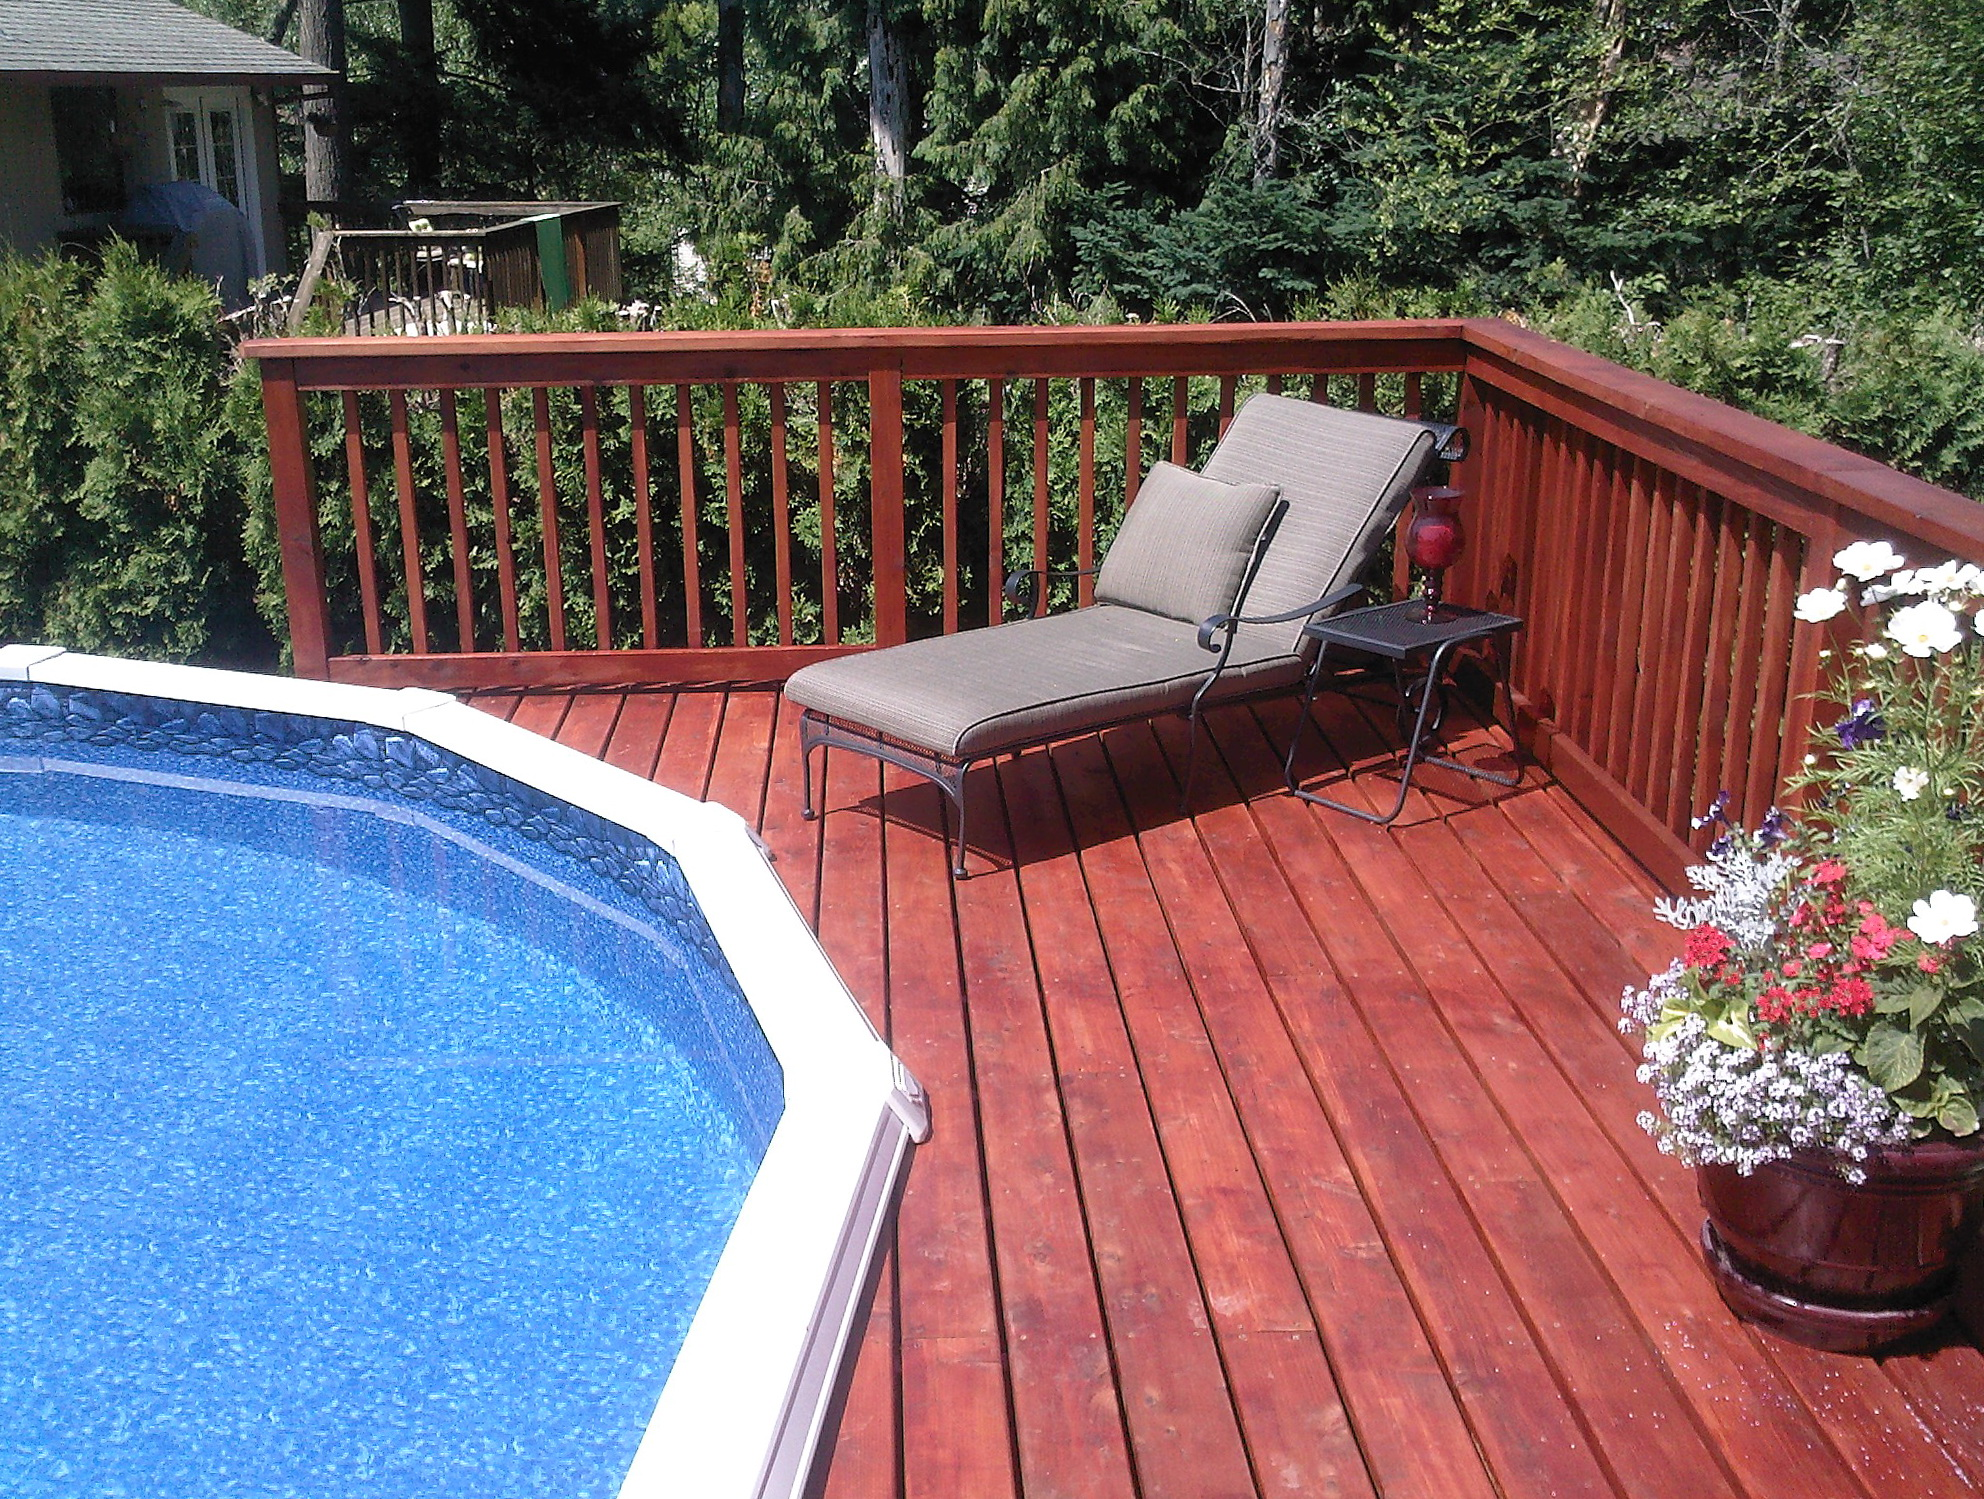 Cheap deck ideas for above ground pools home design ideas for Pool deck decor ideas